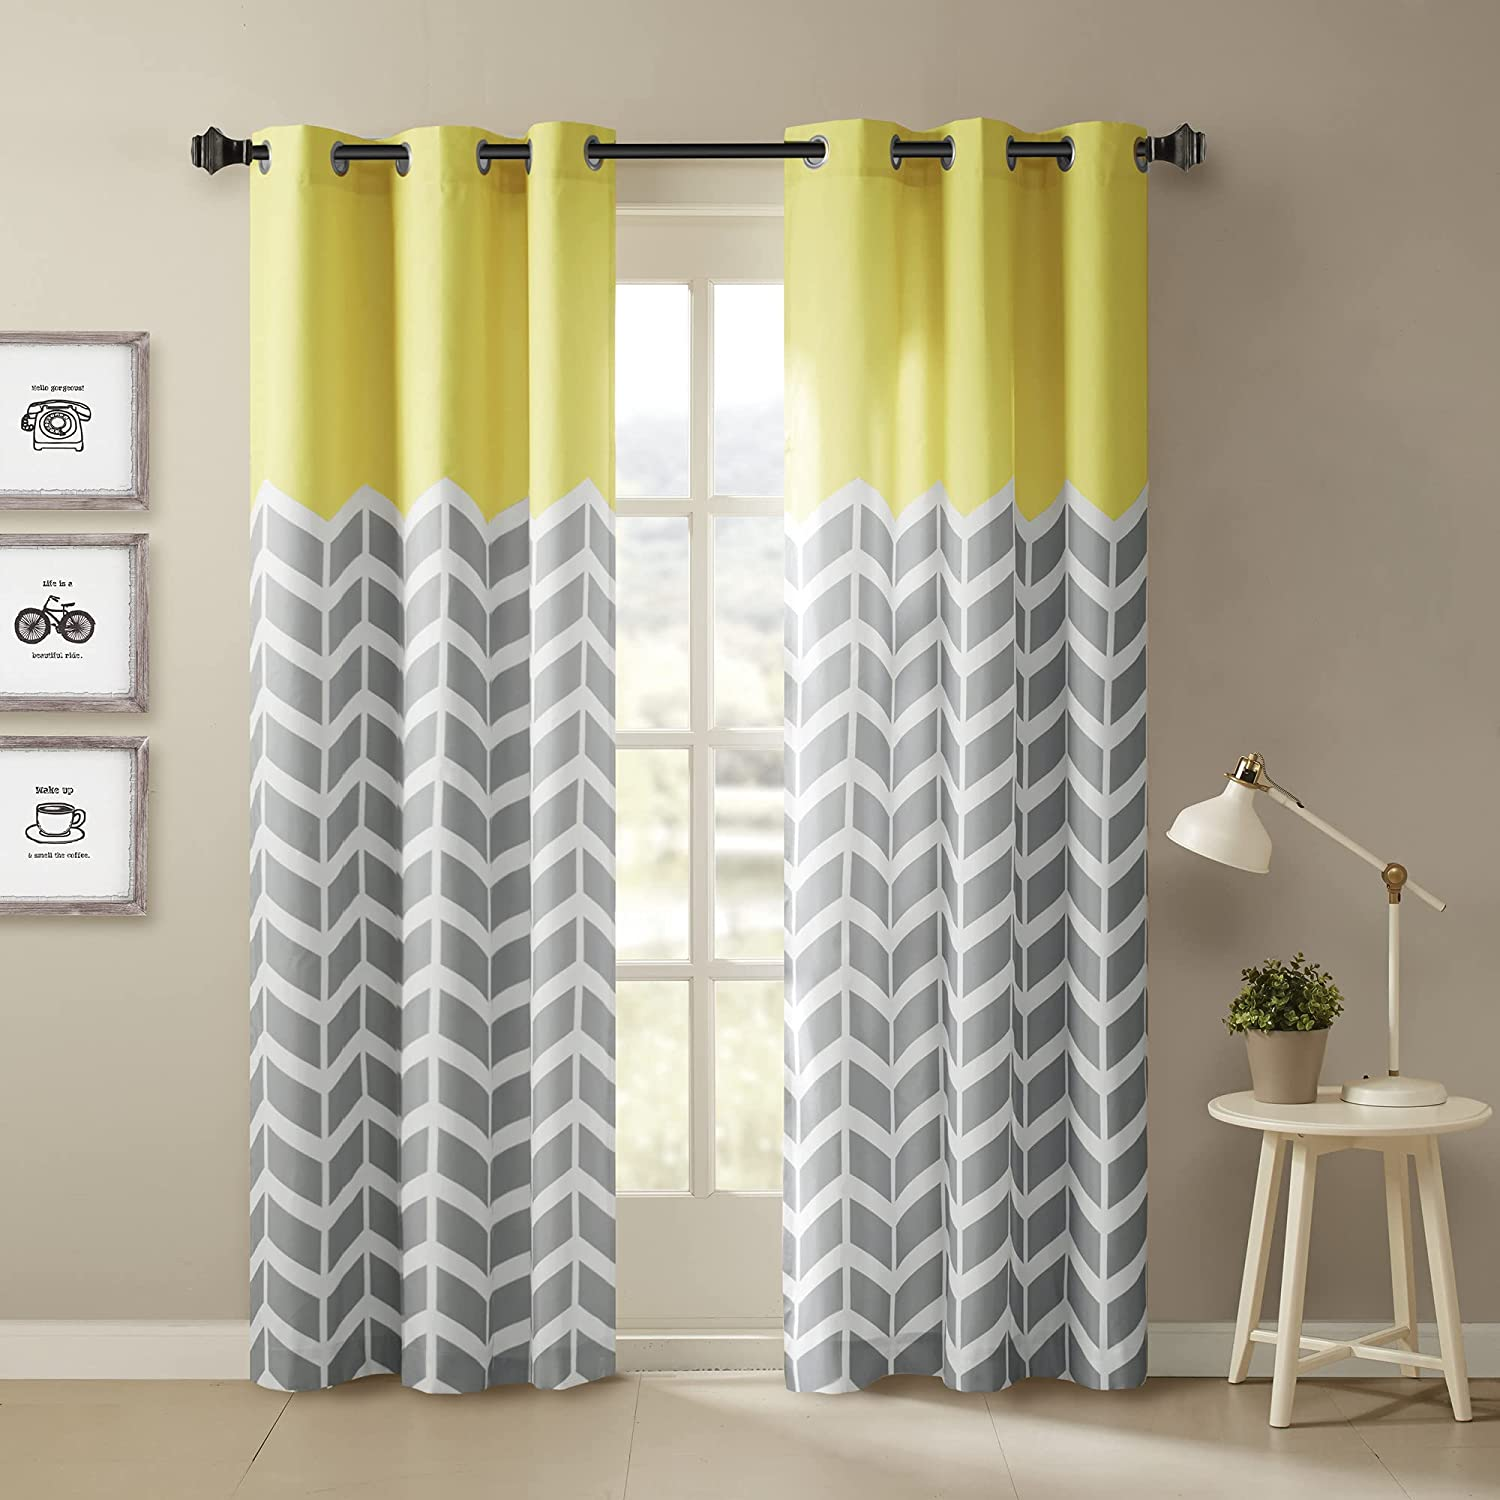 Intelligent Design Yellow in Grey Chevron Printed Curtains for Living Room  or Bedroom, Modern Contemporary Grommet Room Darkening Curtains, 20x20, ...